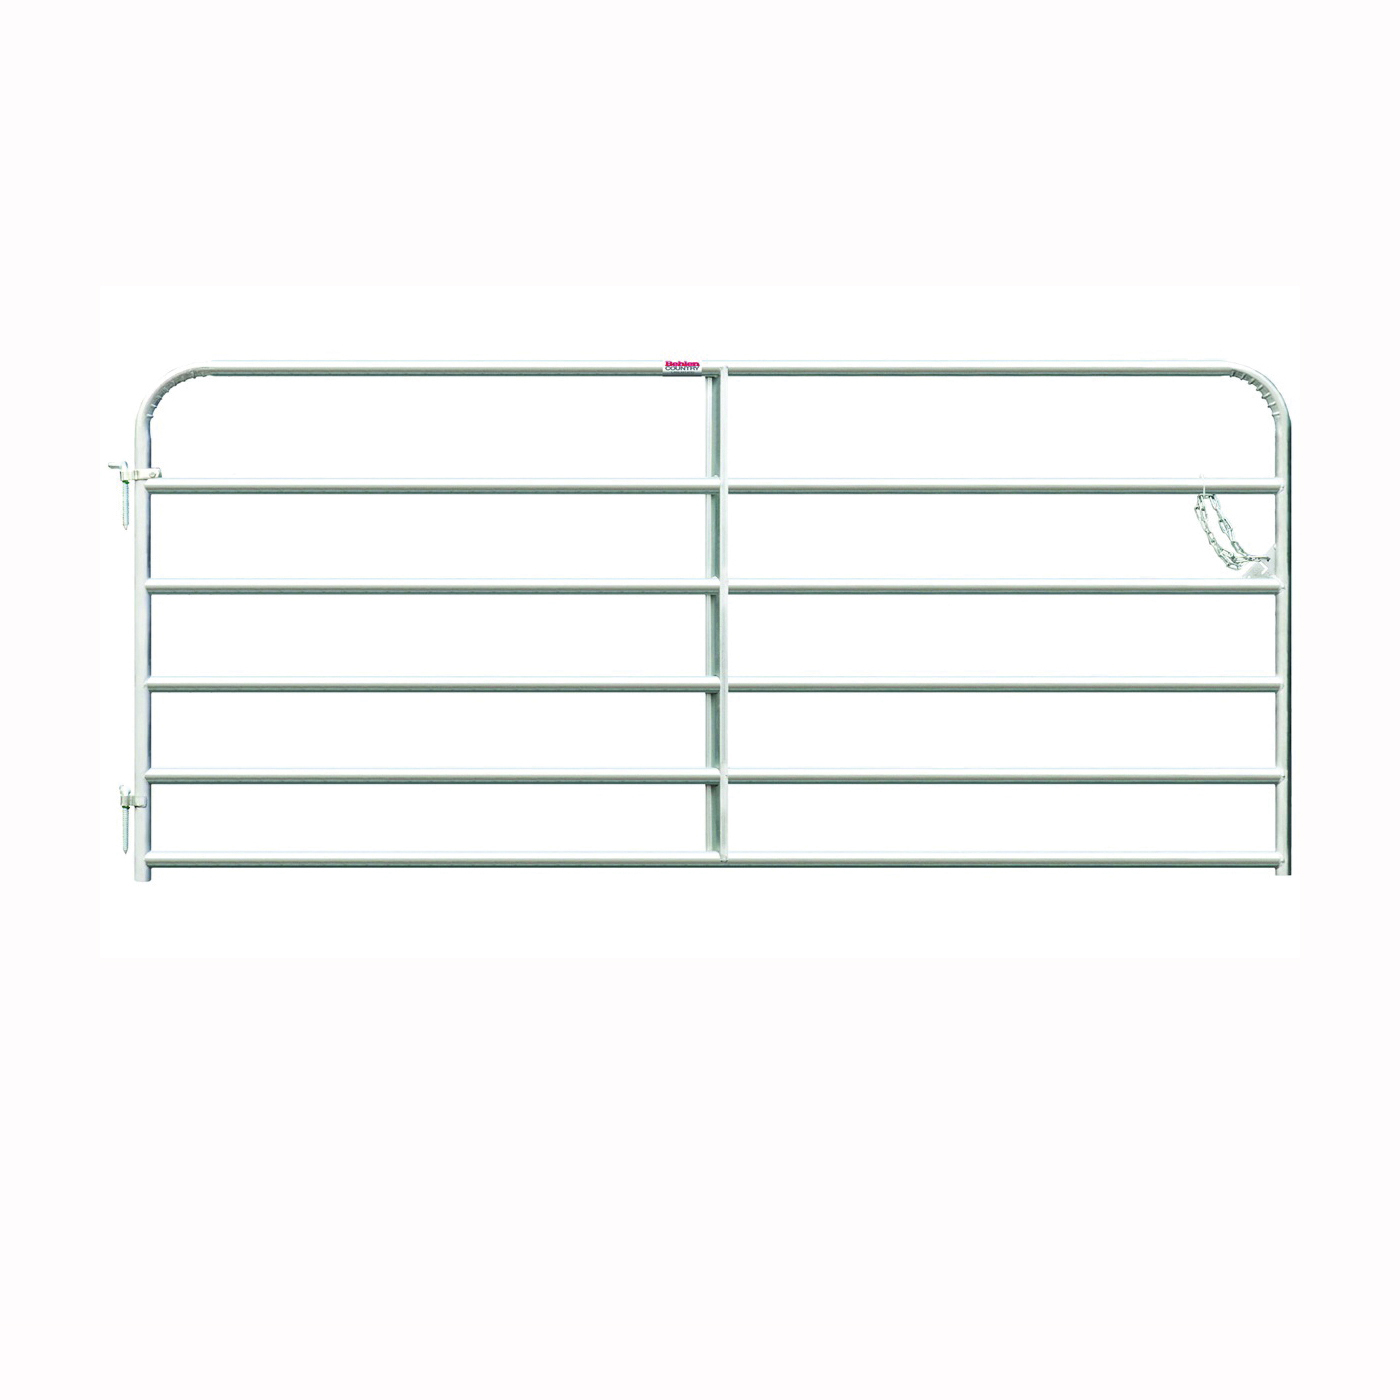 Picture of Behlen Country 40113088 Galvanized Gate, 96 in W Gate, 50 in H Gate, 20 ga Frame Tube/Channel, Steel Frame, Red